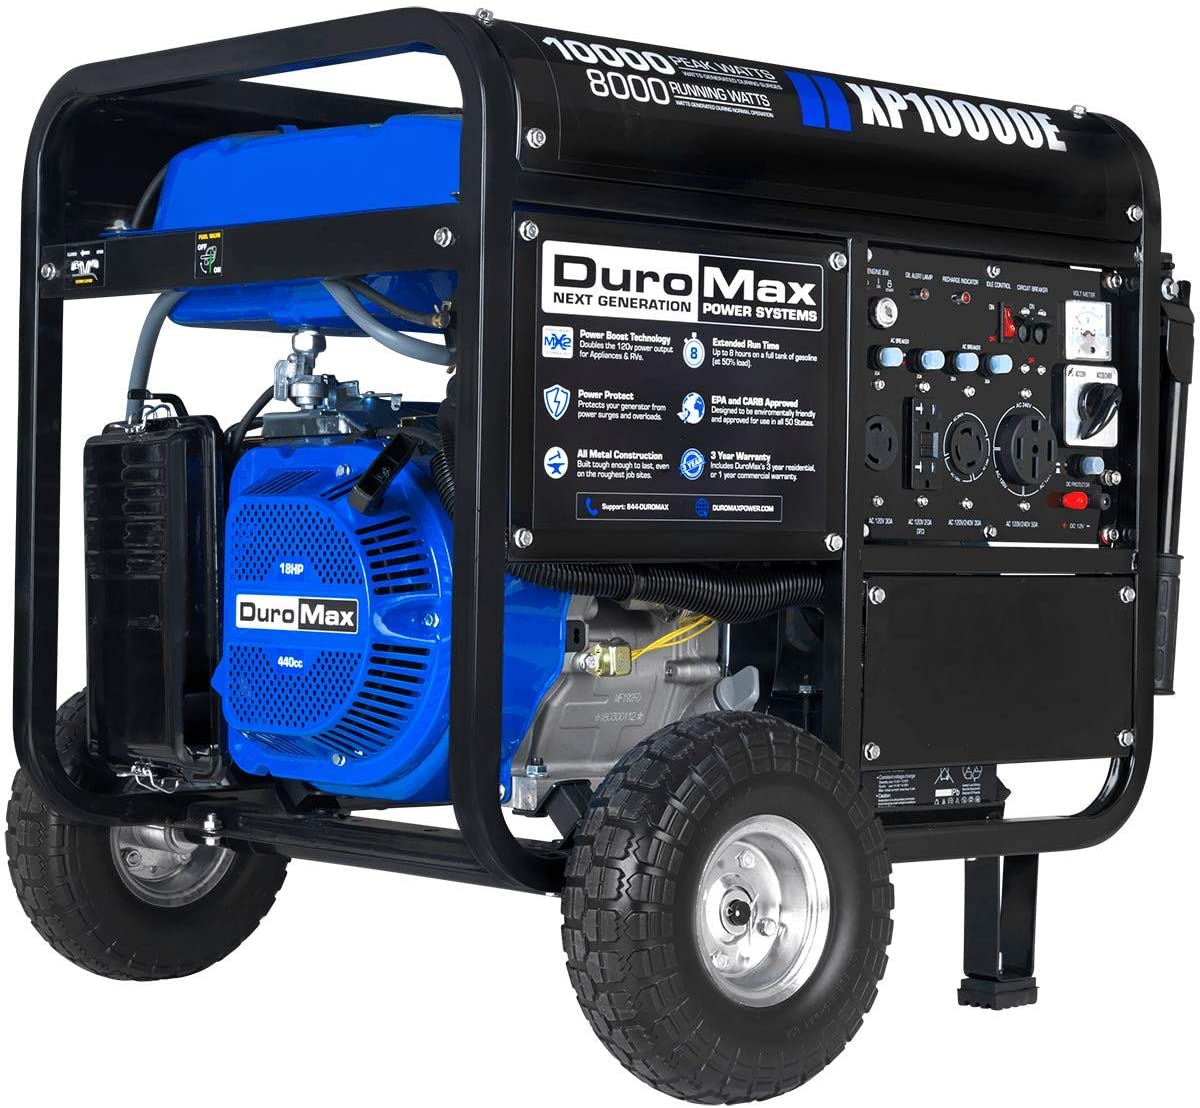 DuroMax XP10000E Gas Powered Portable Generator-10000 Watt Electric Start-Home Back Up & RV Ready, 50 State Approved